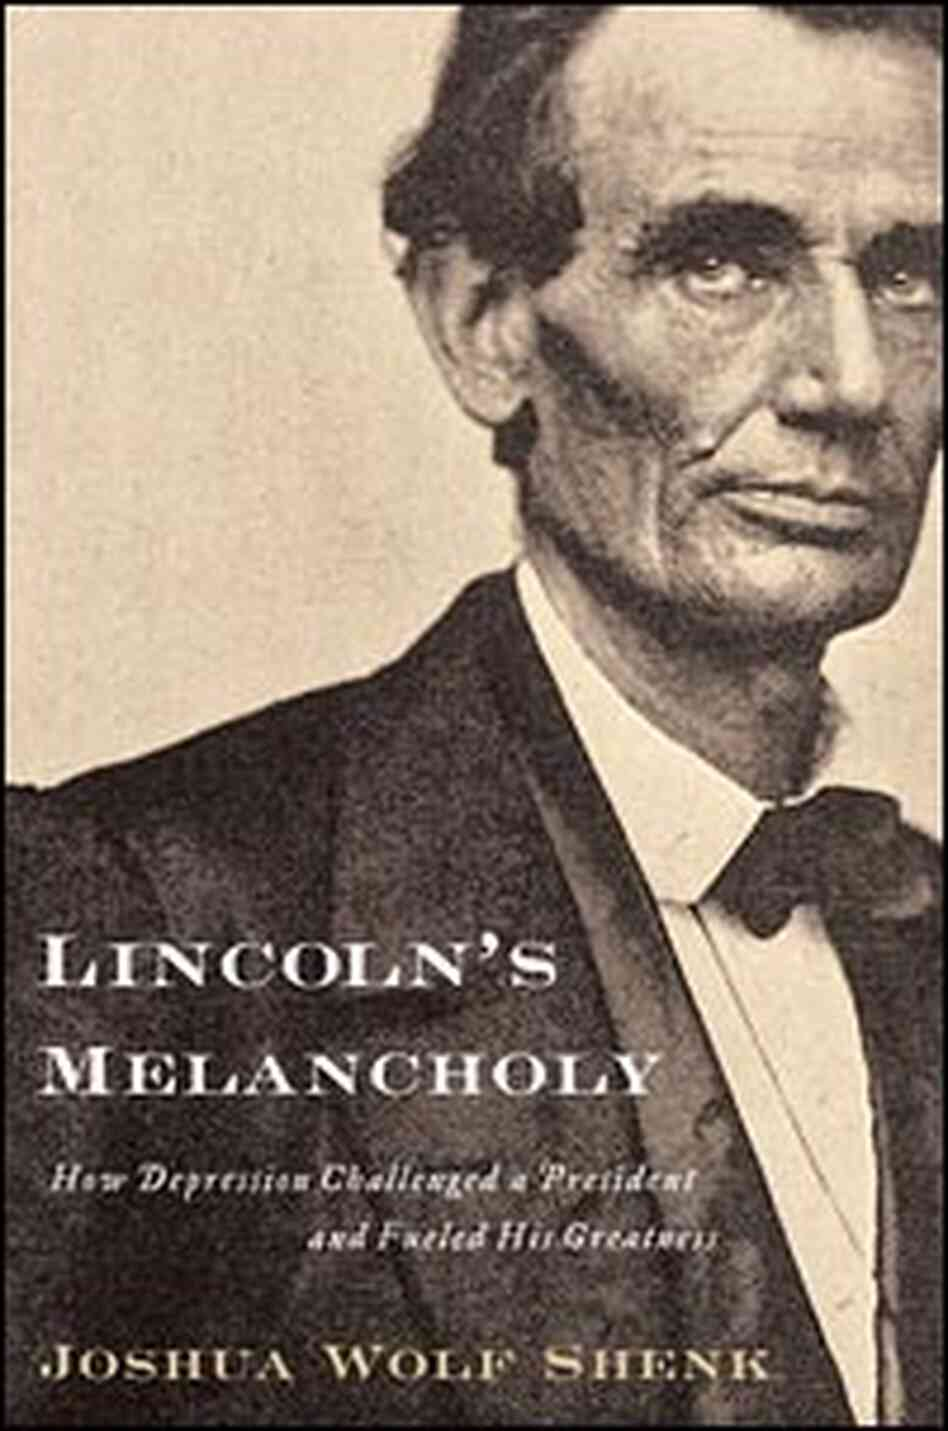 'Lincoln's Melancholy' book cover